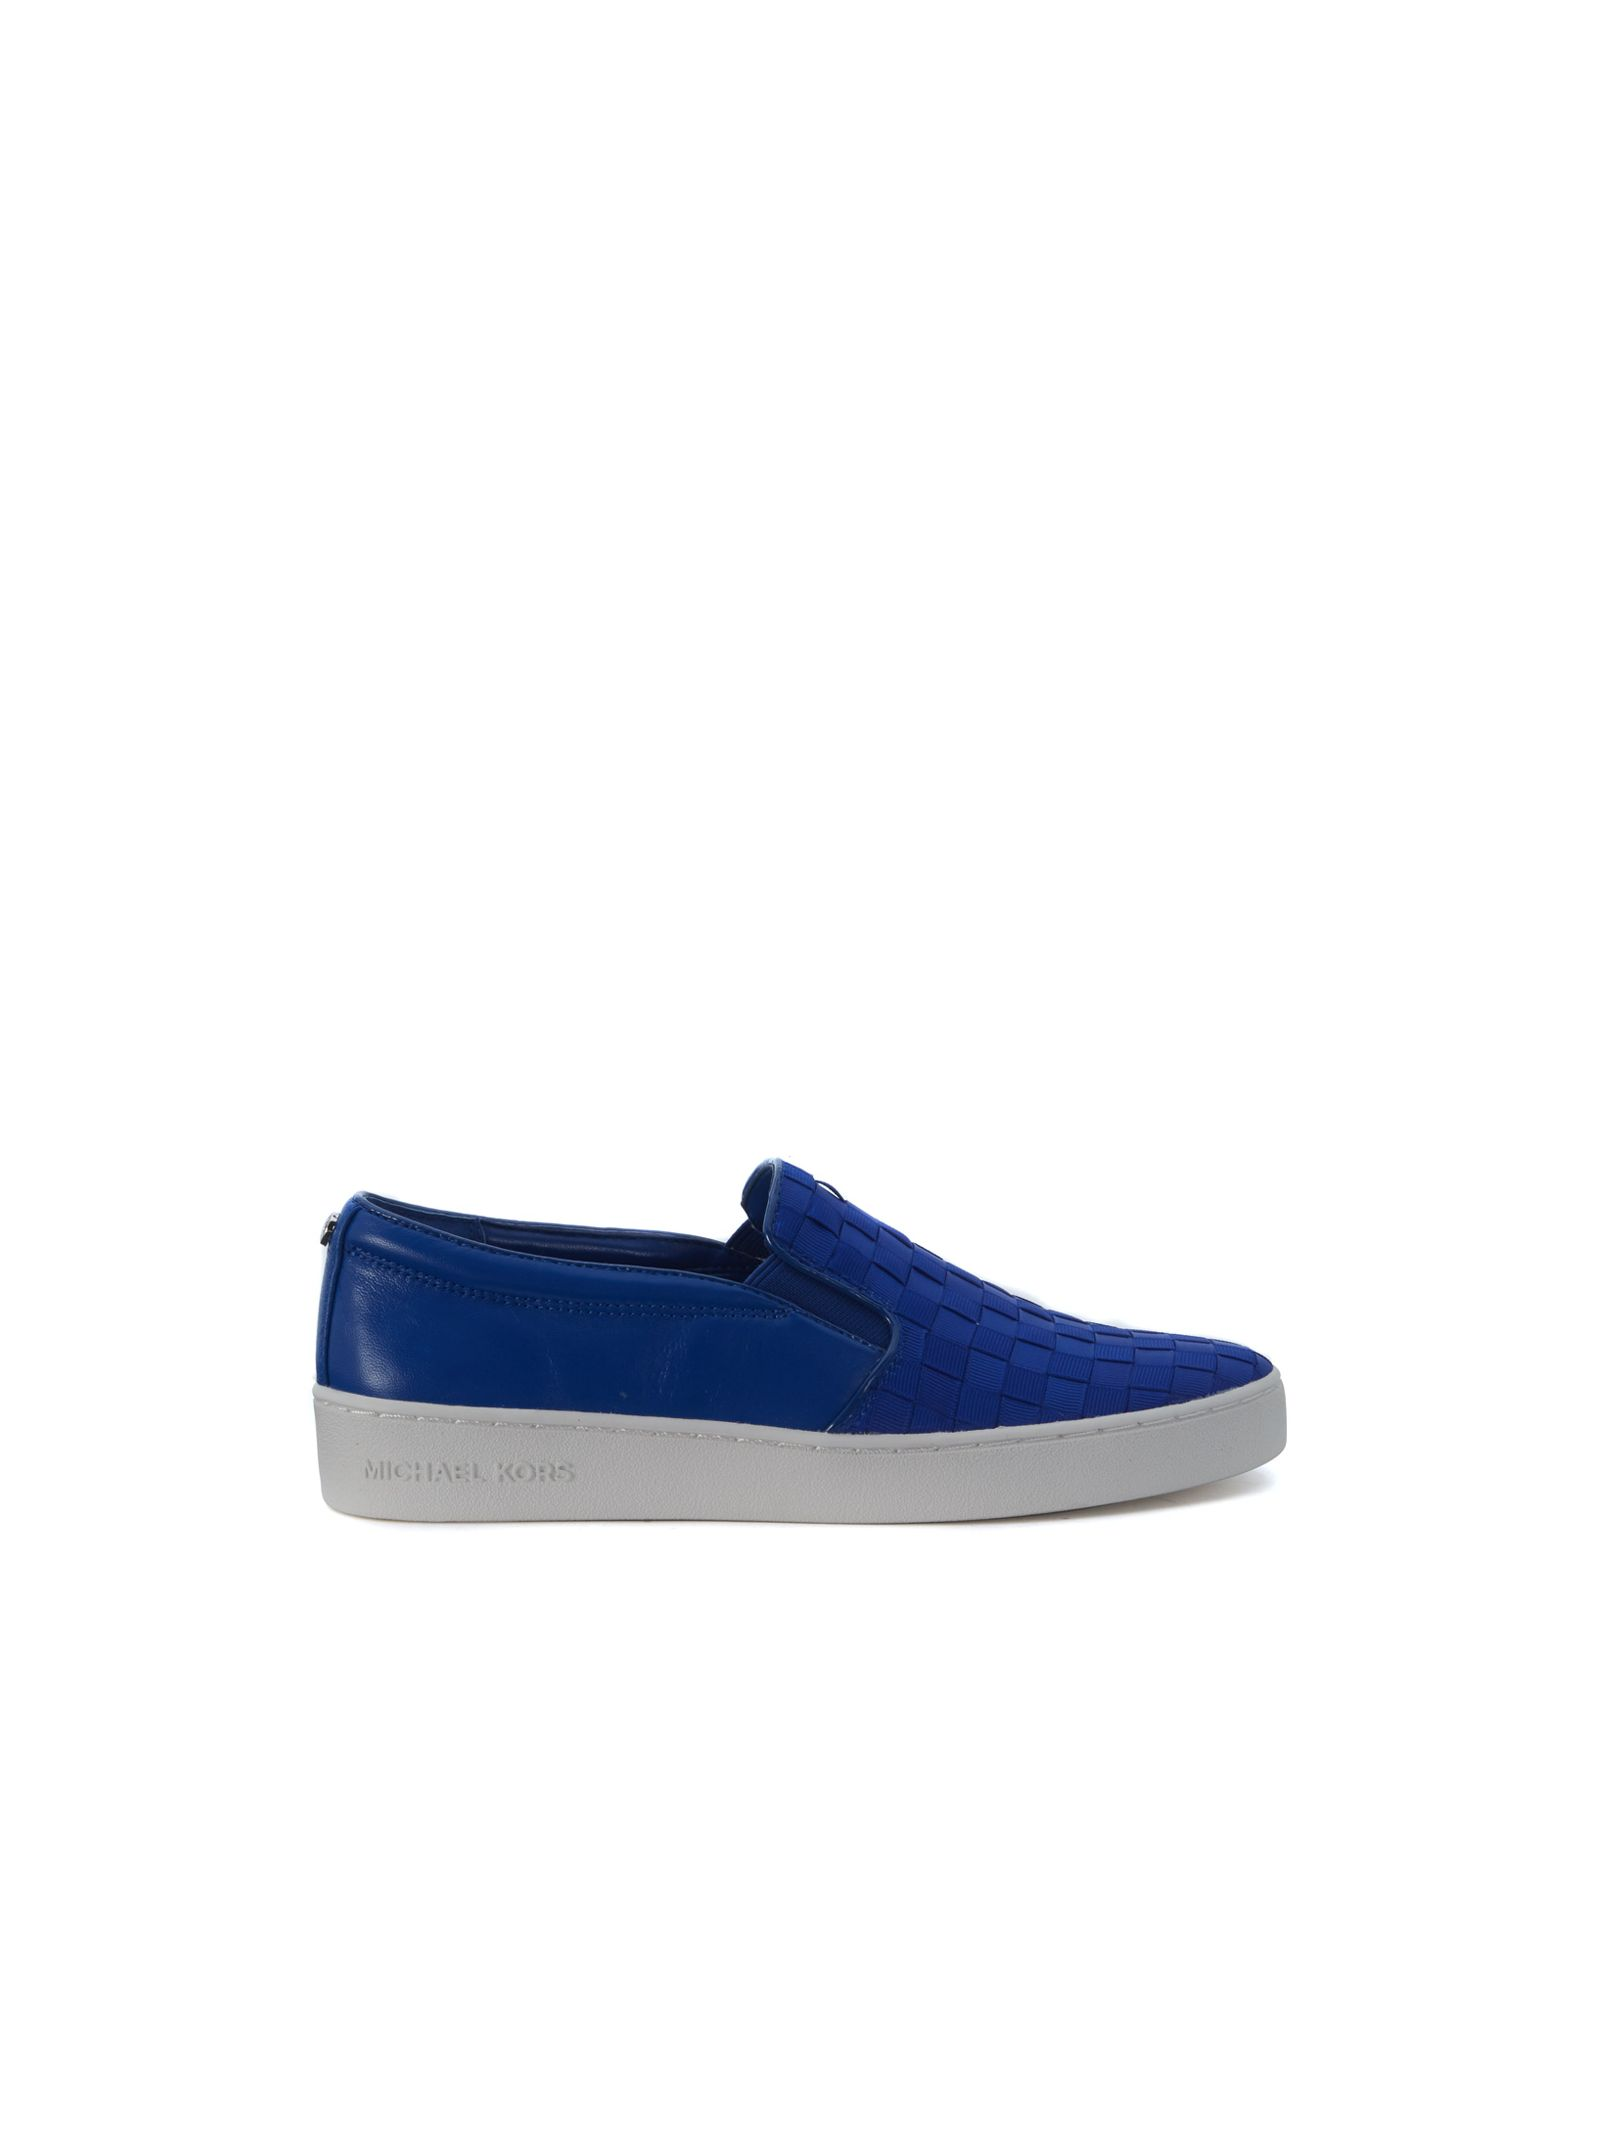 michael kors female slip on michael kors keaton in blue electric leather